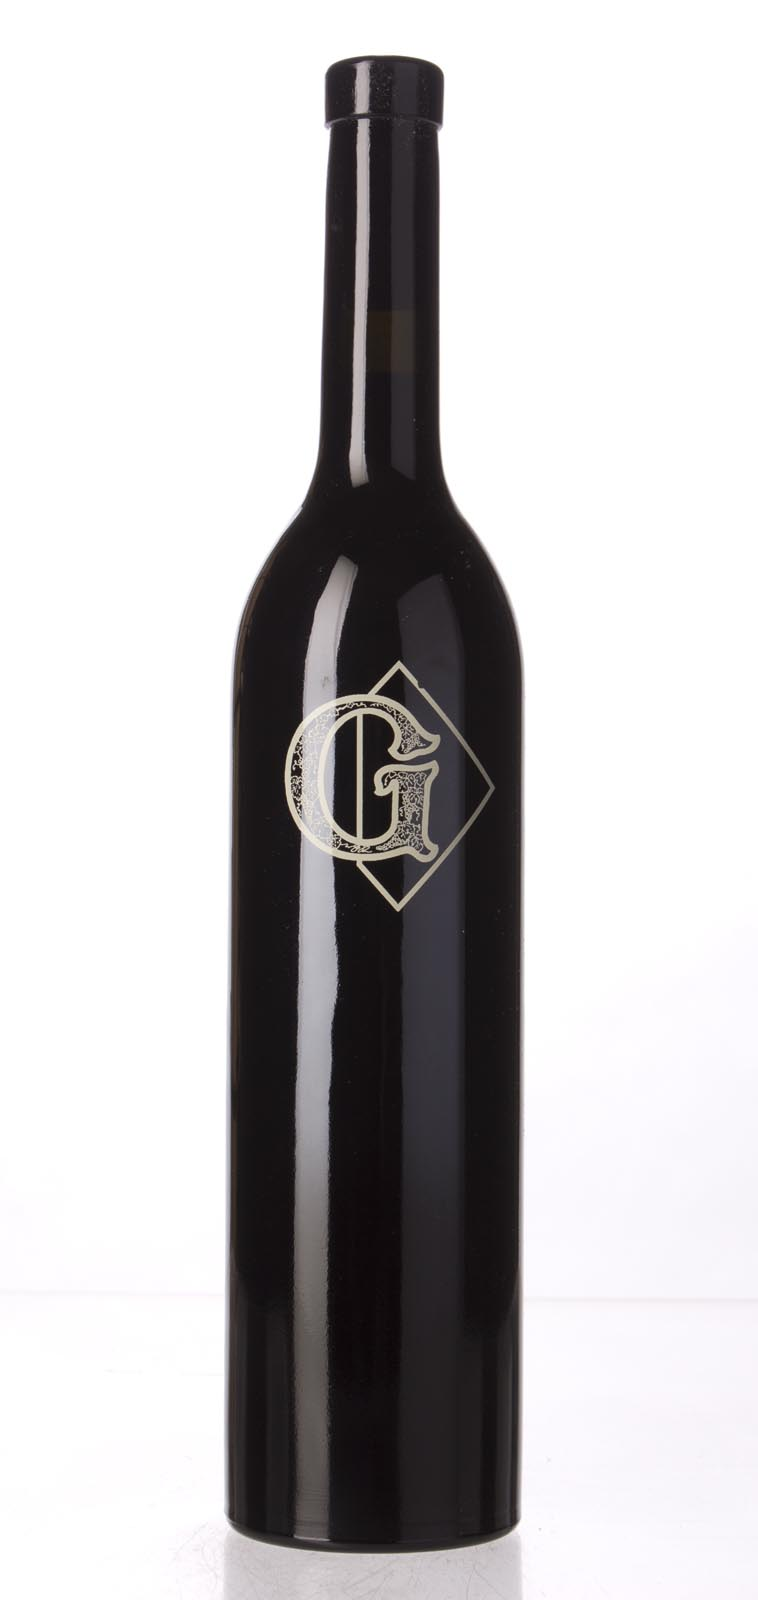 Gemstone Proprietary Red 2000, 750mL (WA91, ST91) from The BPW - Merchants of rare and fine wines.